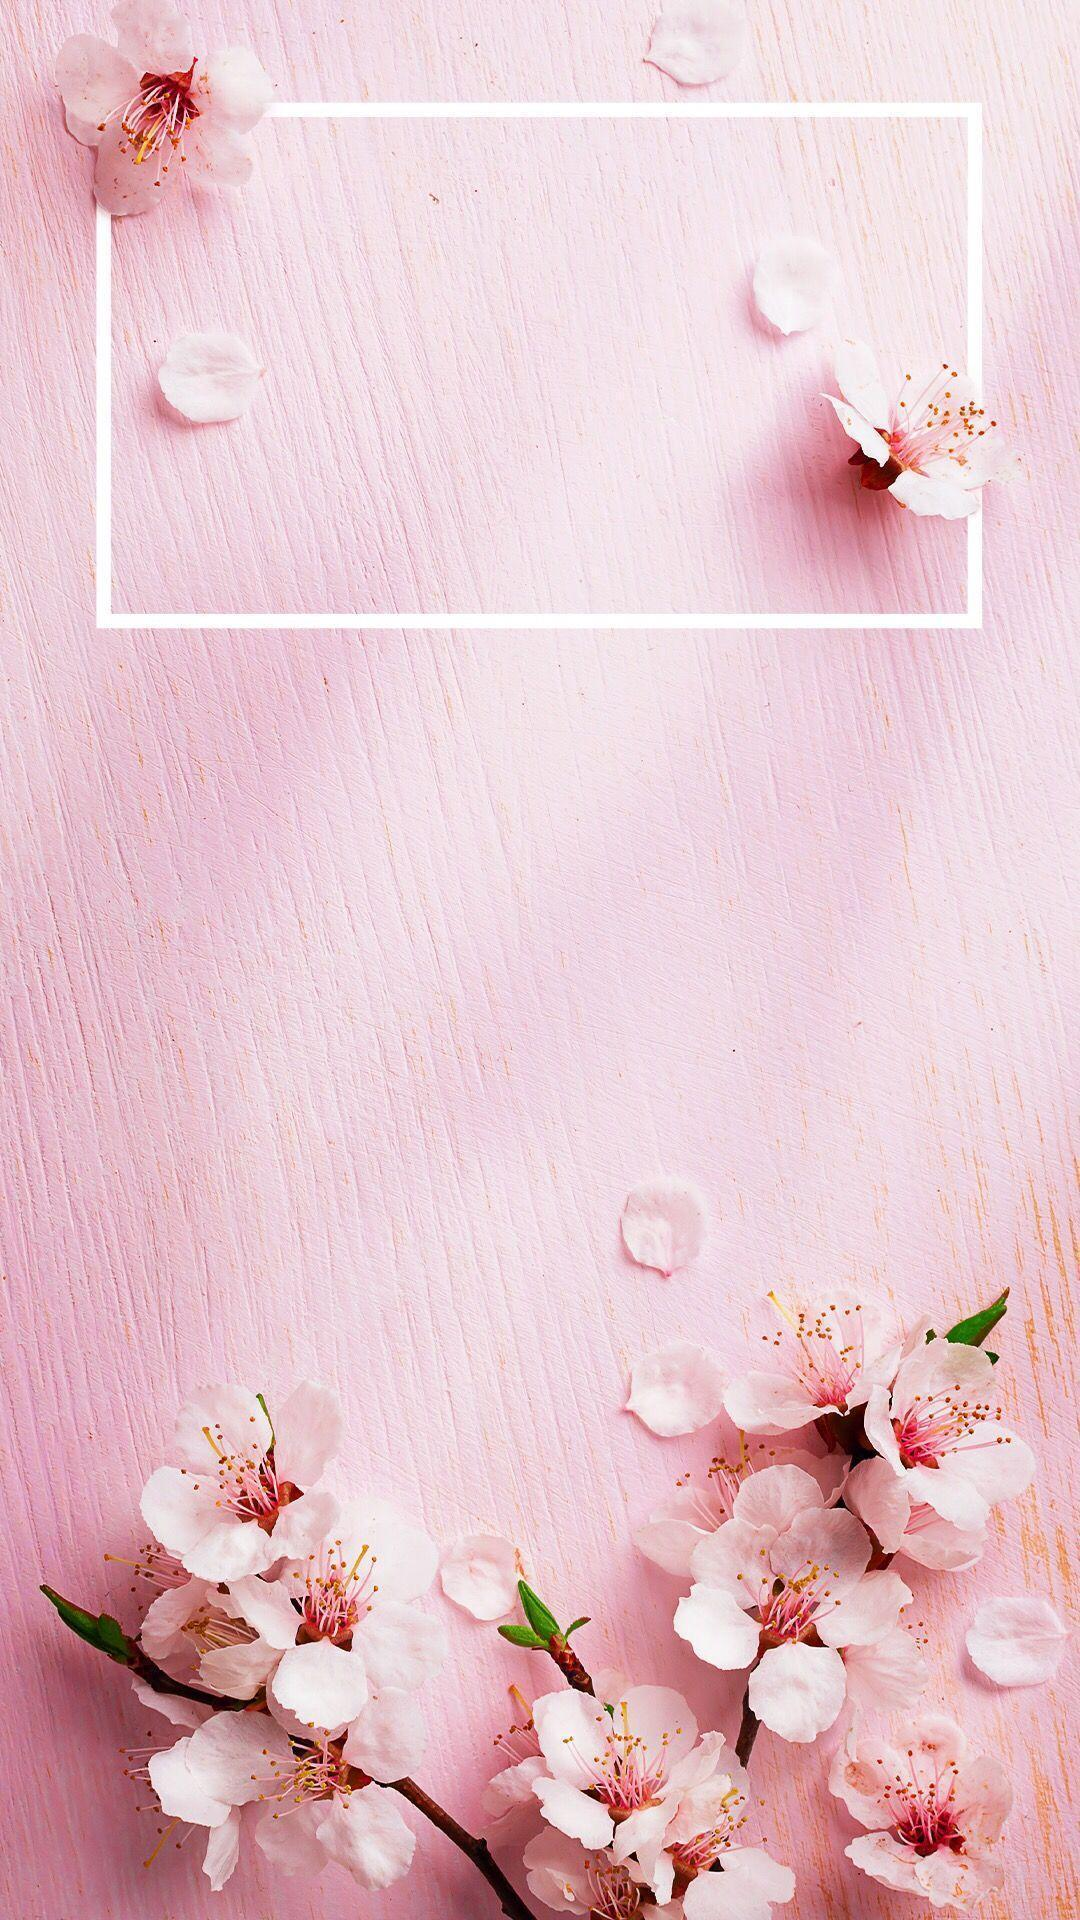 Rose Gold Aesthetic Wallpapers Top Free Rose Gold